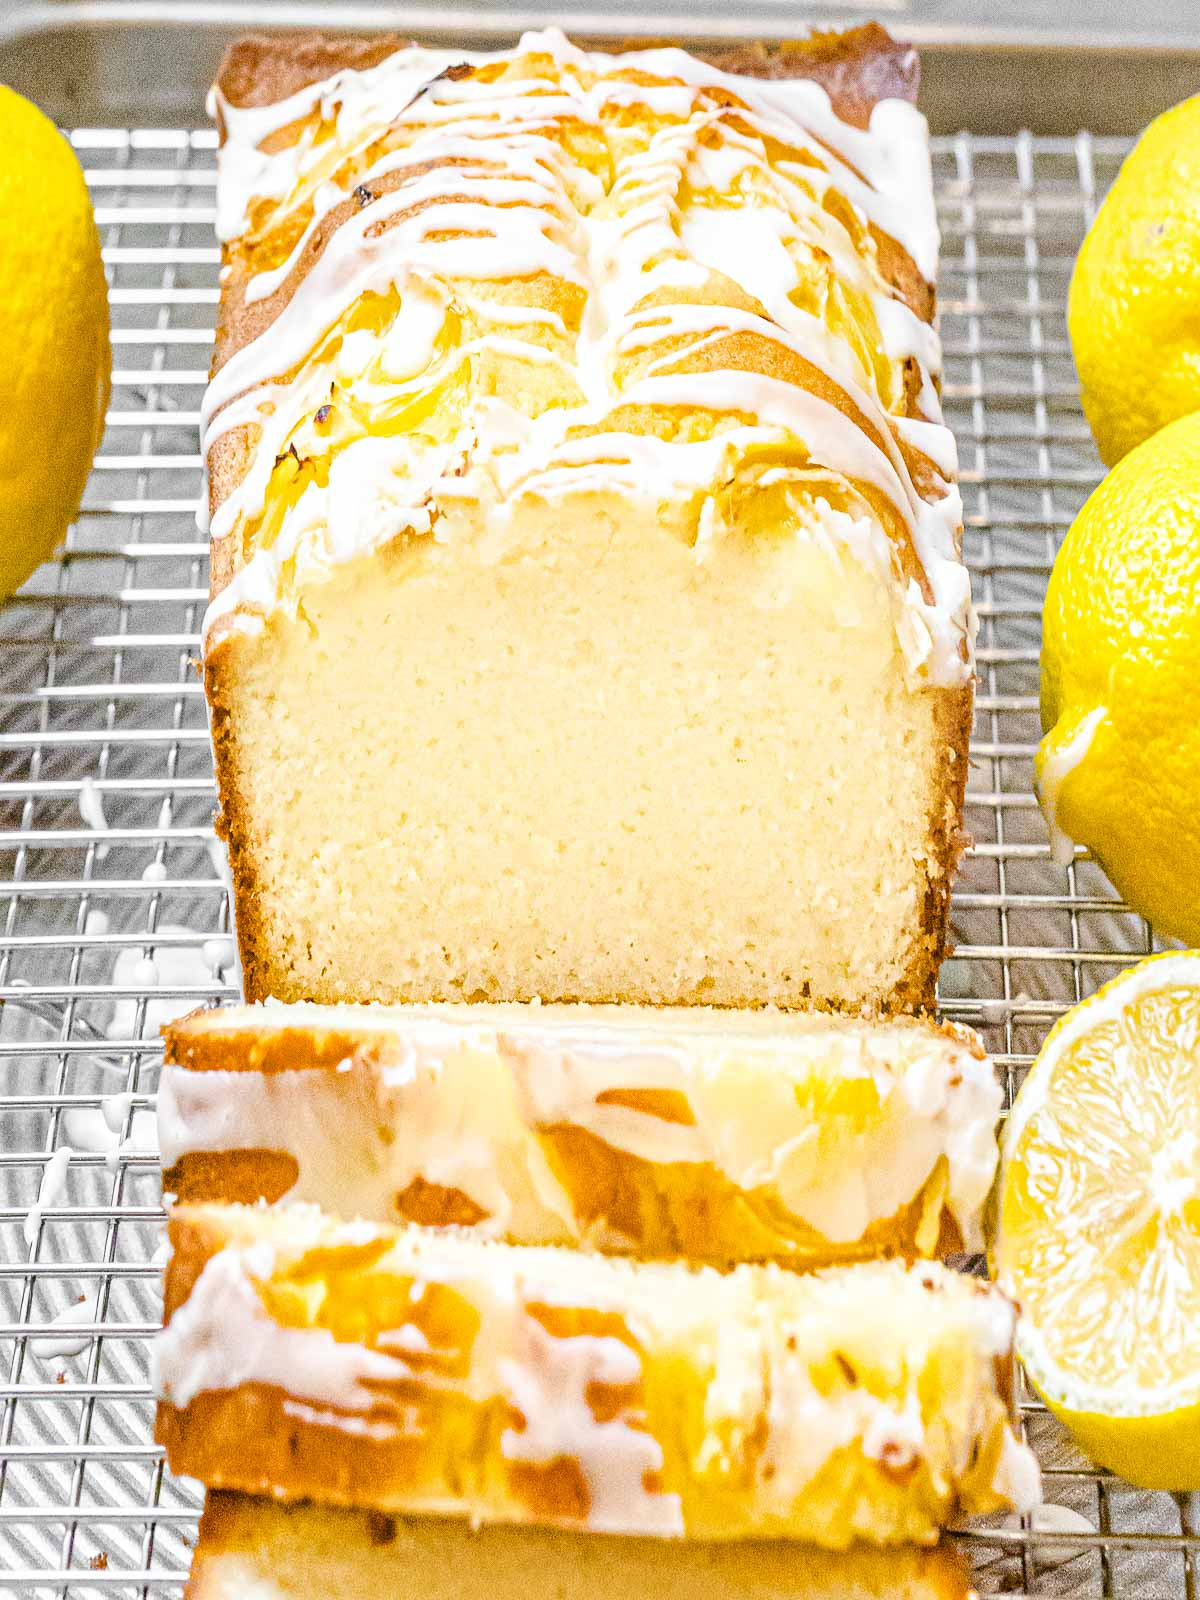 cross section of lemon pound cake with glaze drizzled on top next to lemons on a cooling rack